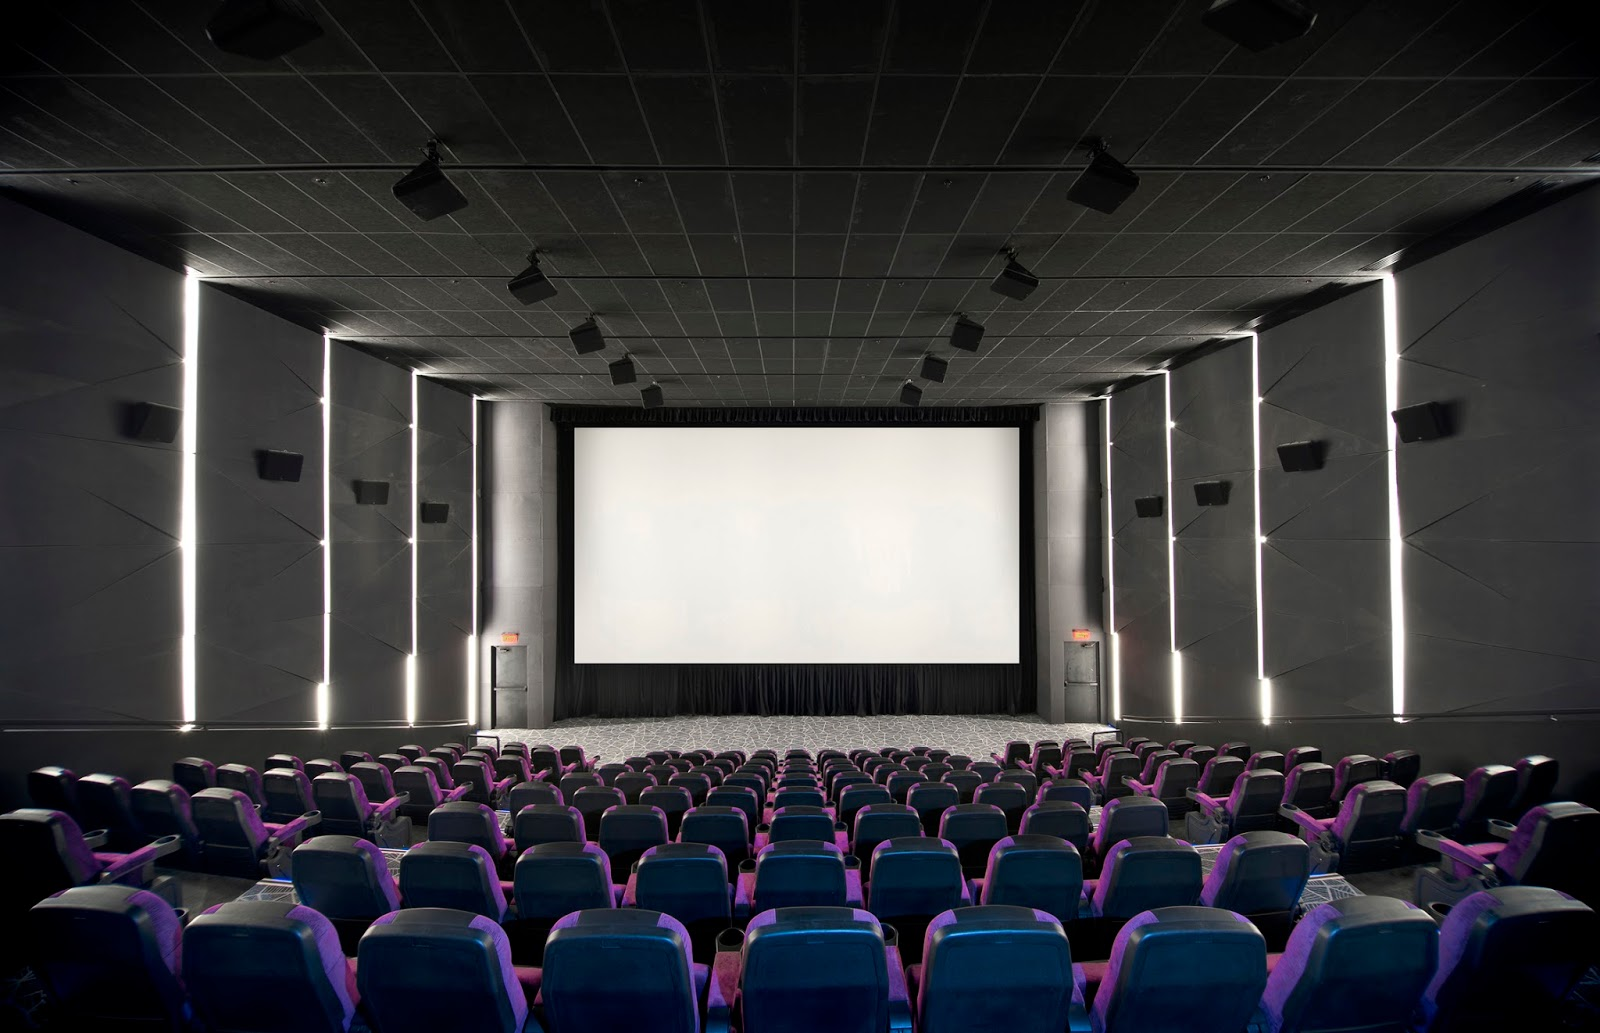 vista posture chair office chairs non revolving manila life cinemas opens first and only mx4d